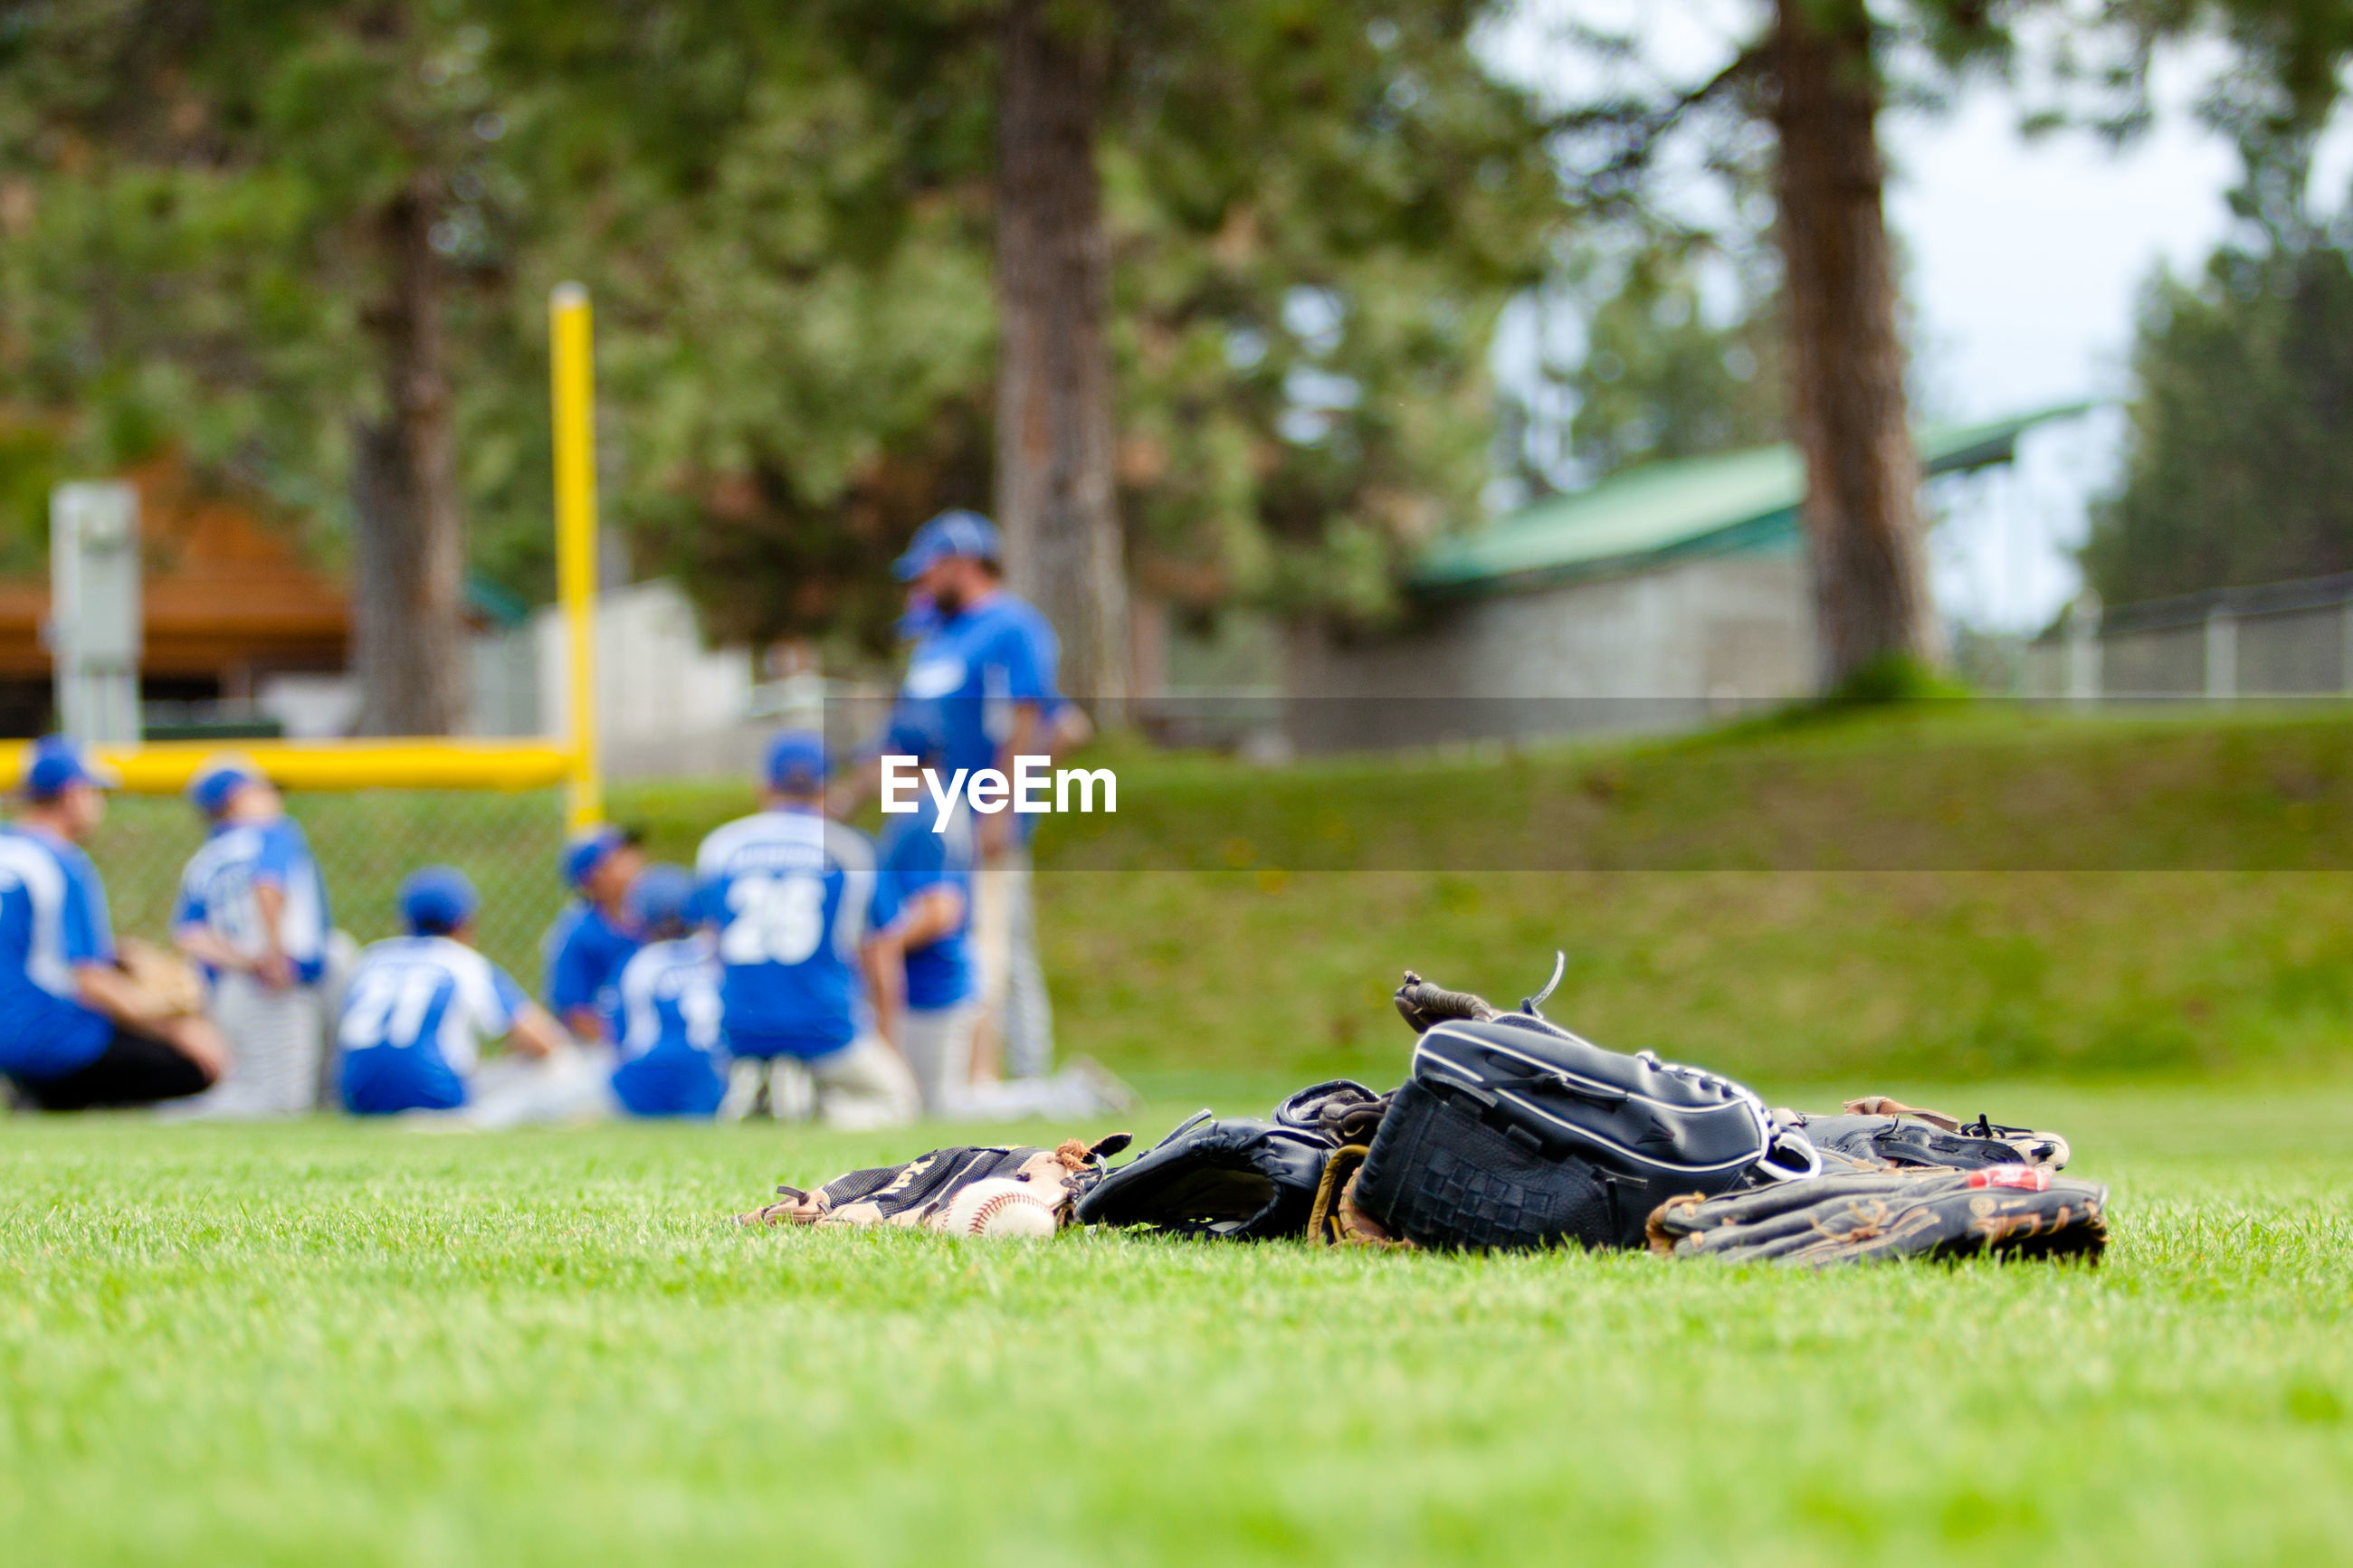 Baseball gloves by players on grassy field